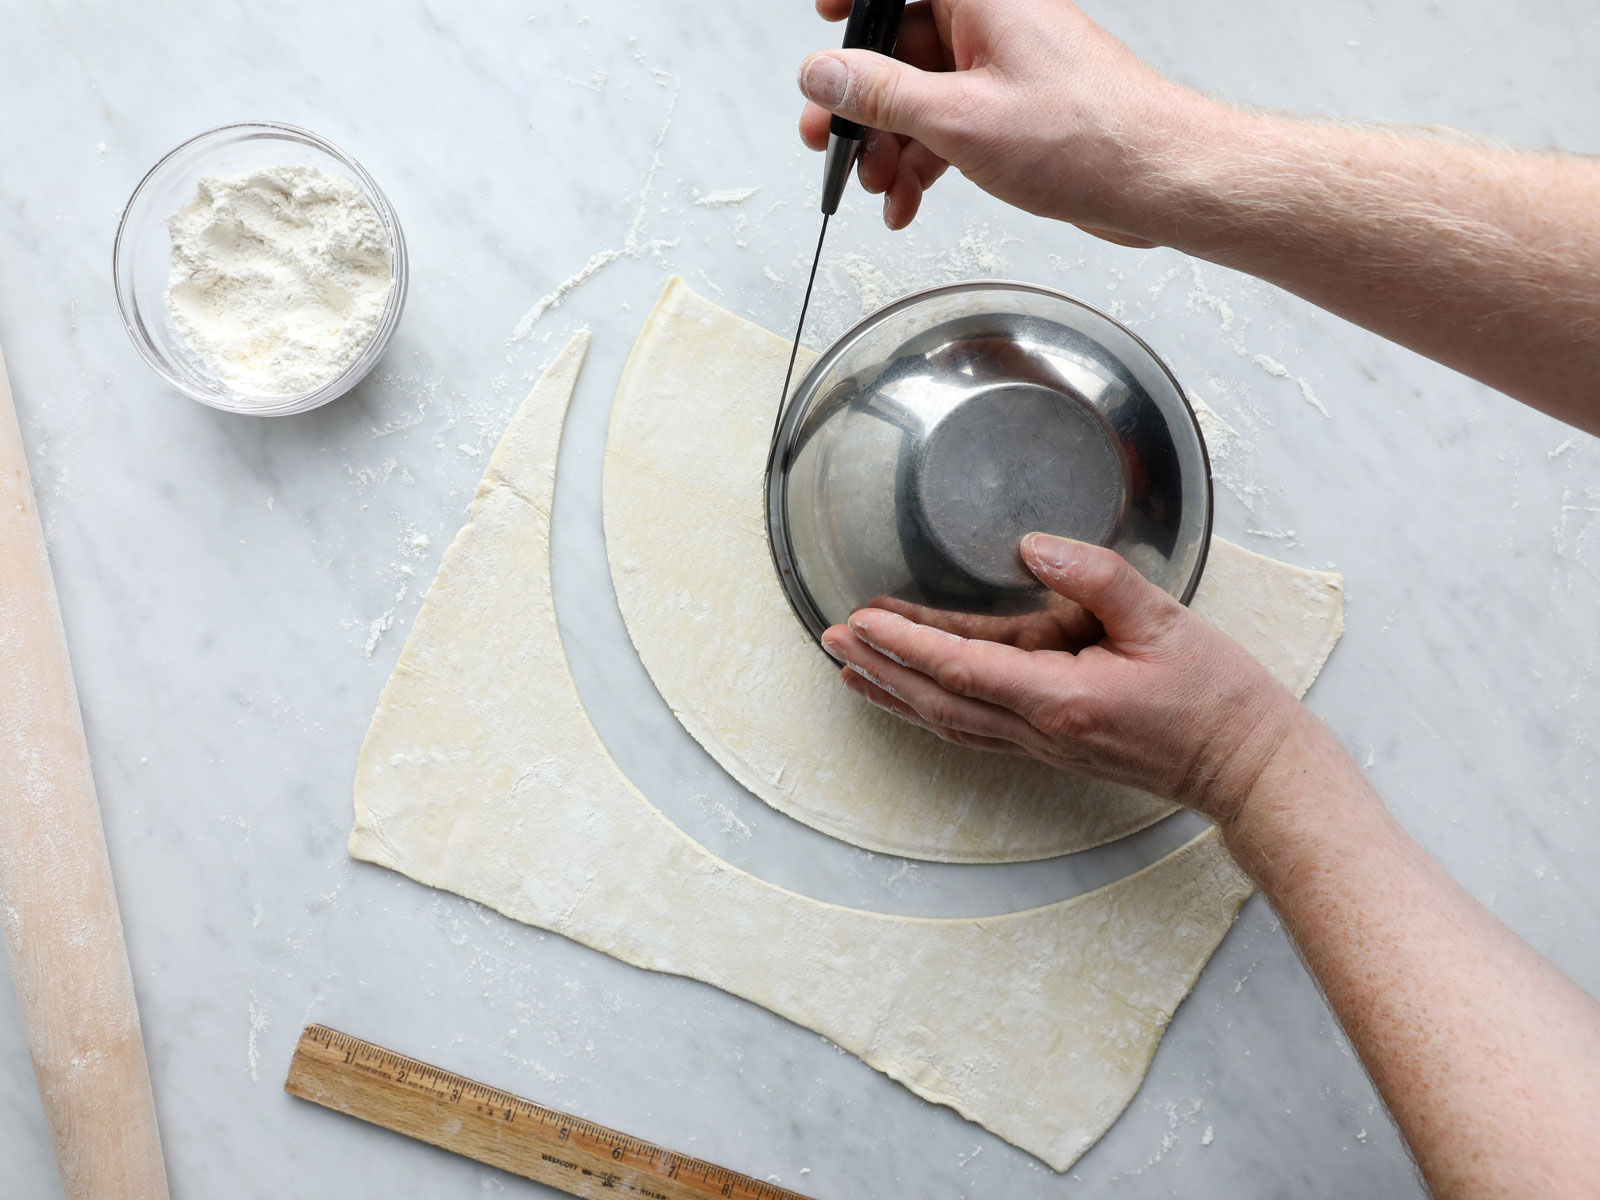 Cut Rounds out of Dough